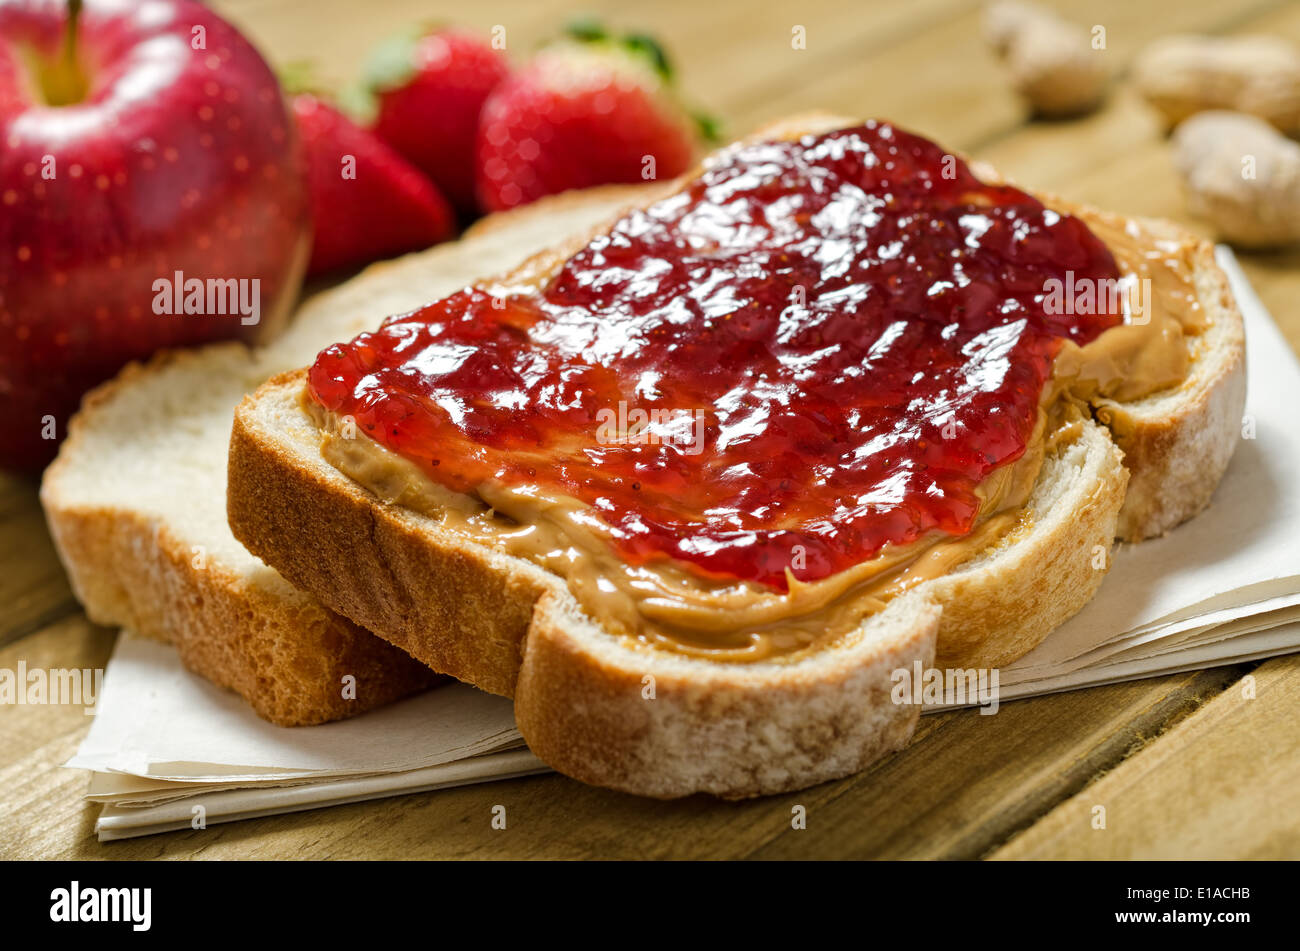 A nutritious peanut butter and jelly sandwich with apples, strawberries, and peanuts. - Stock Image